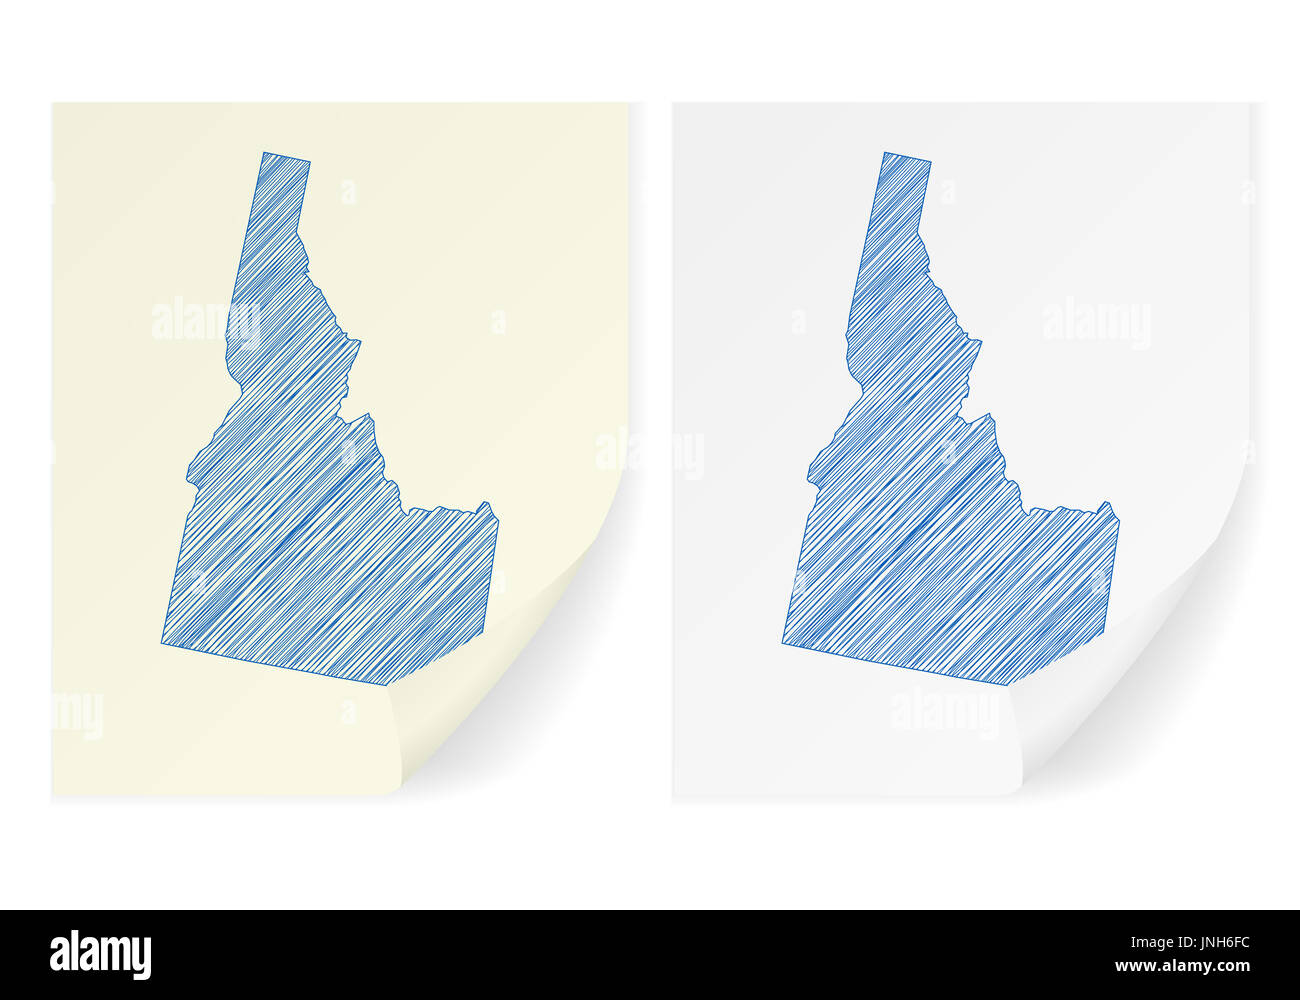 Idaho scribble map on a white background. - Stock Image